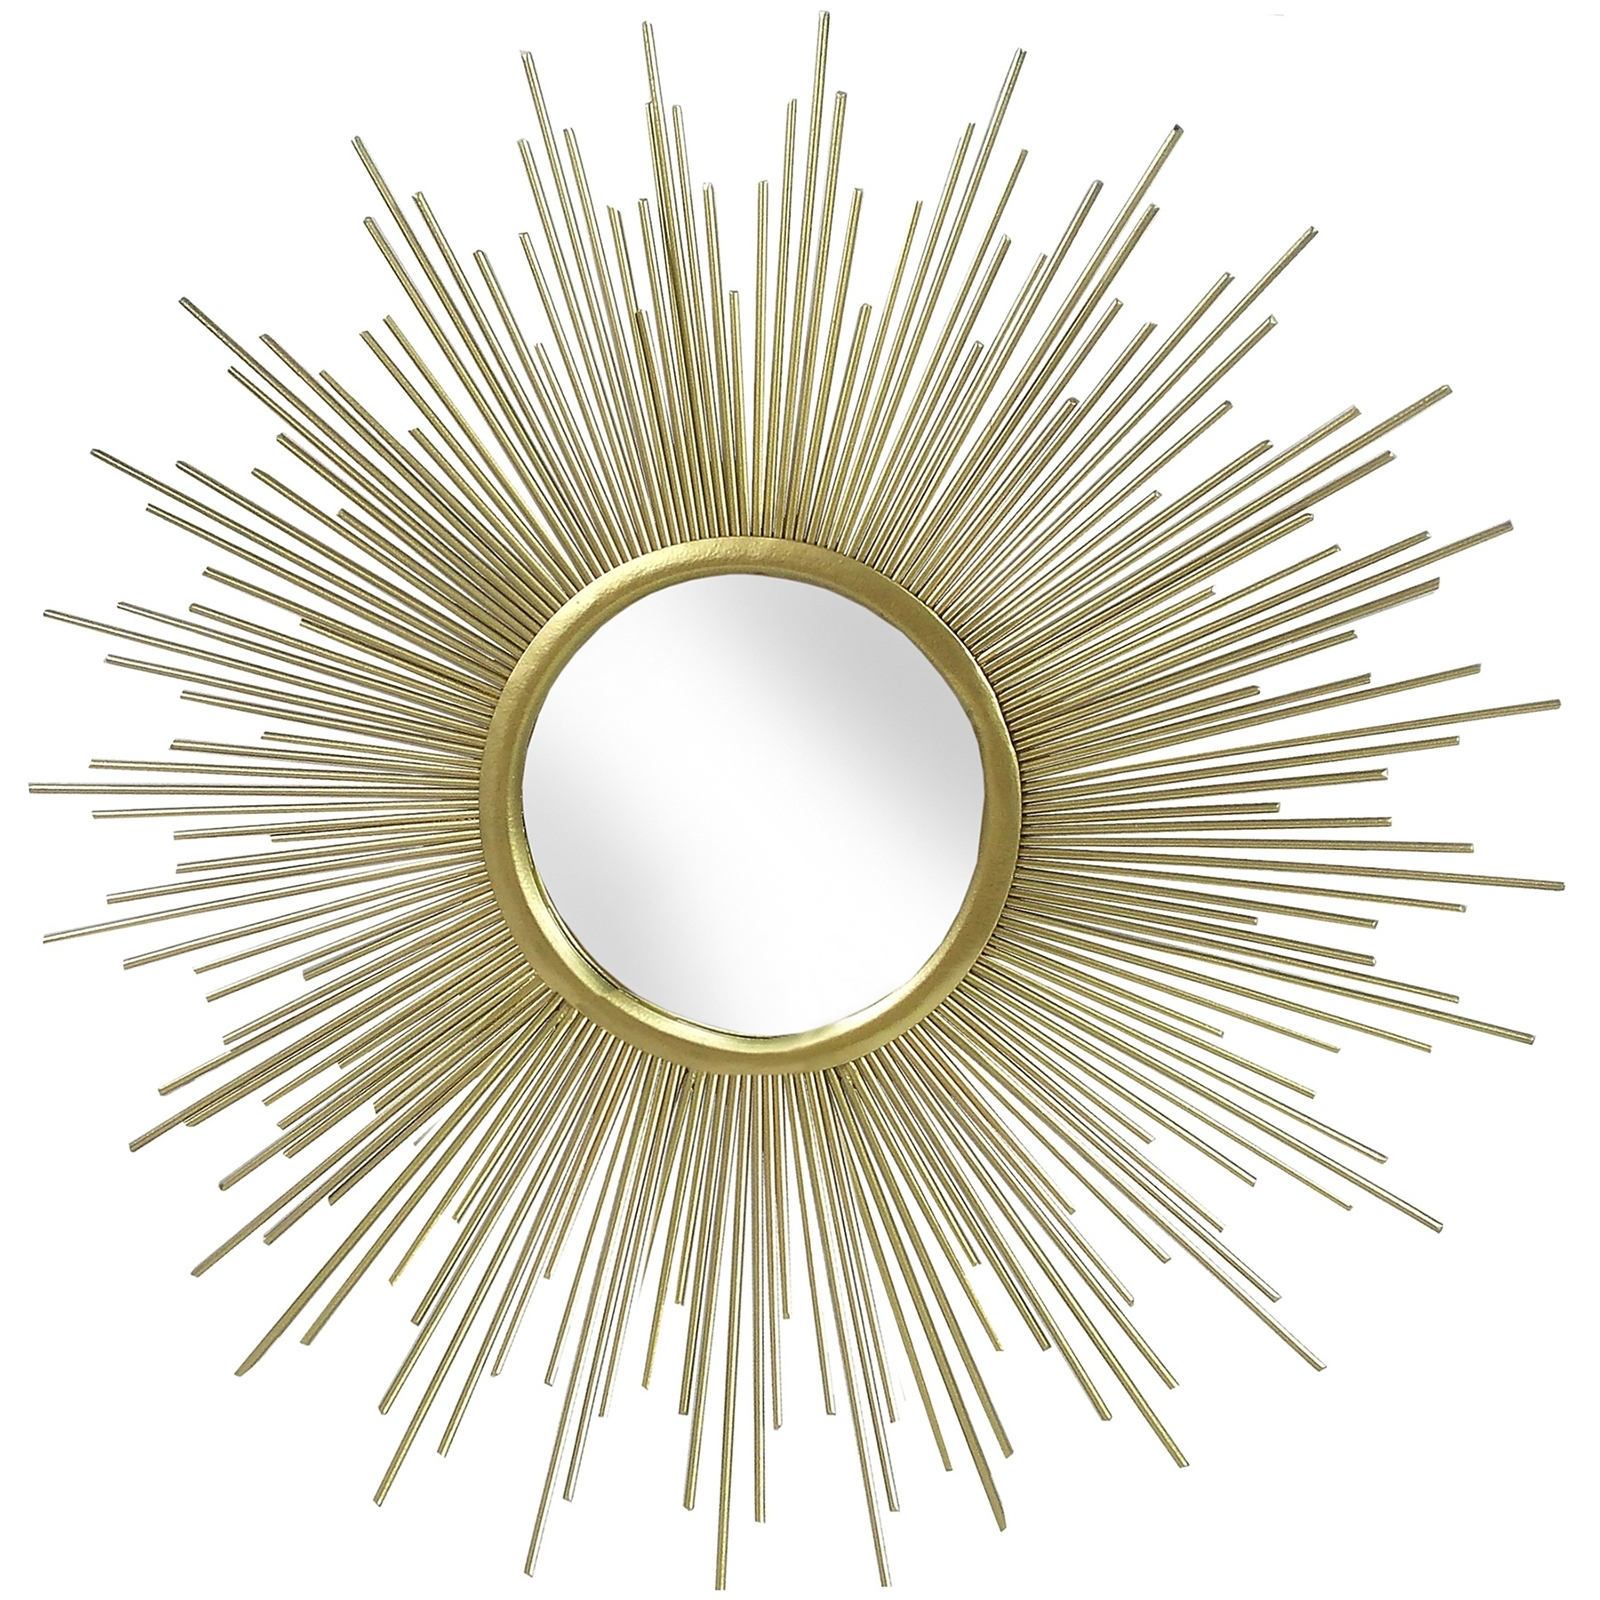 Rising Sun Gold Metal Wall Art Mirror – Casanad For Recent Gold Metal Wall Art (View 8 of 15)